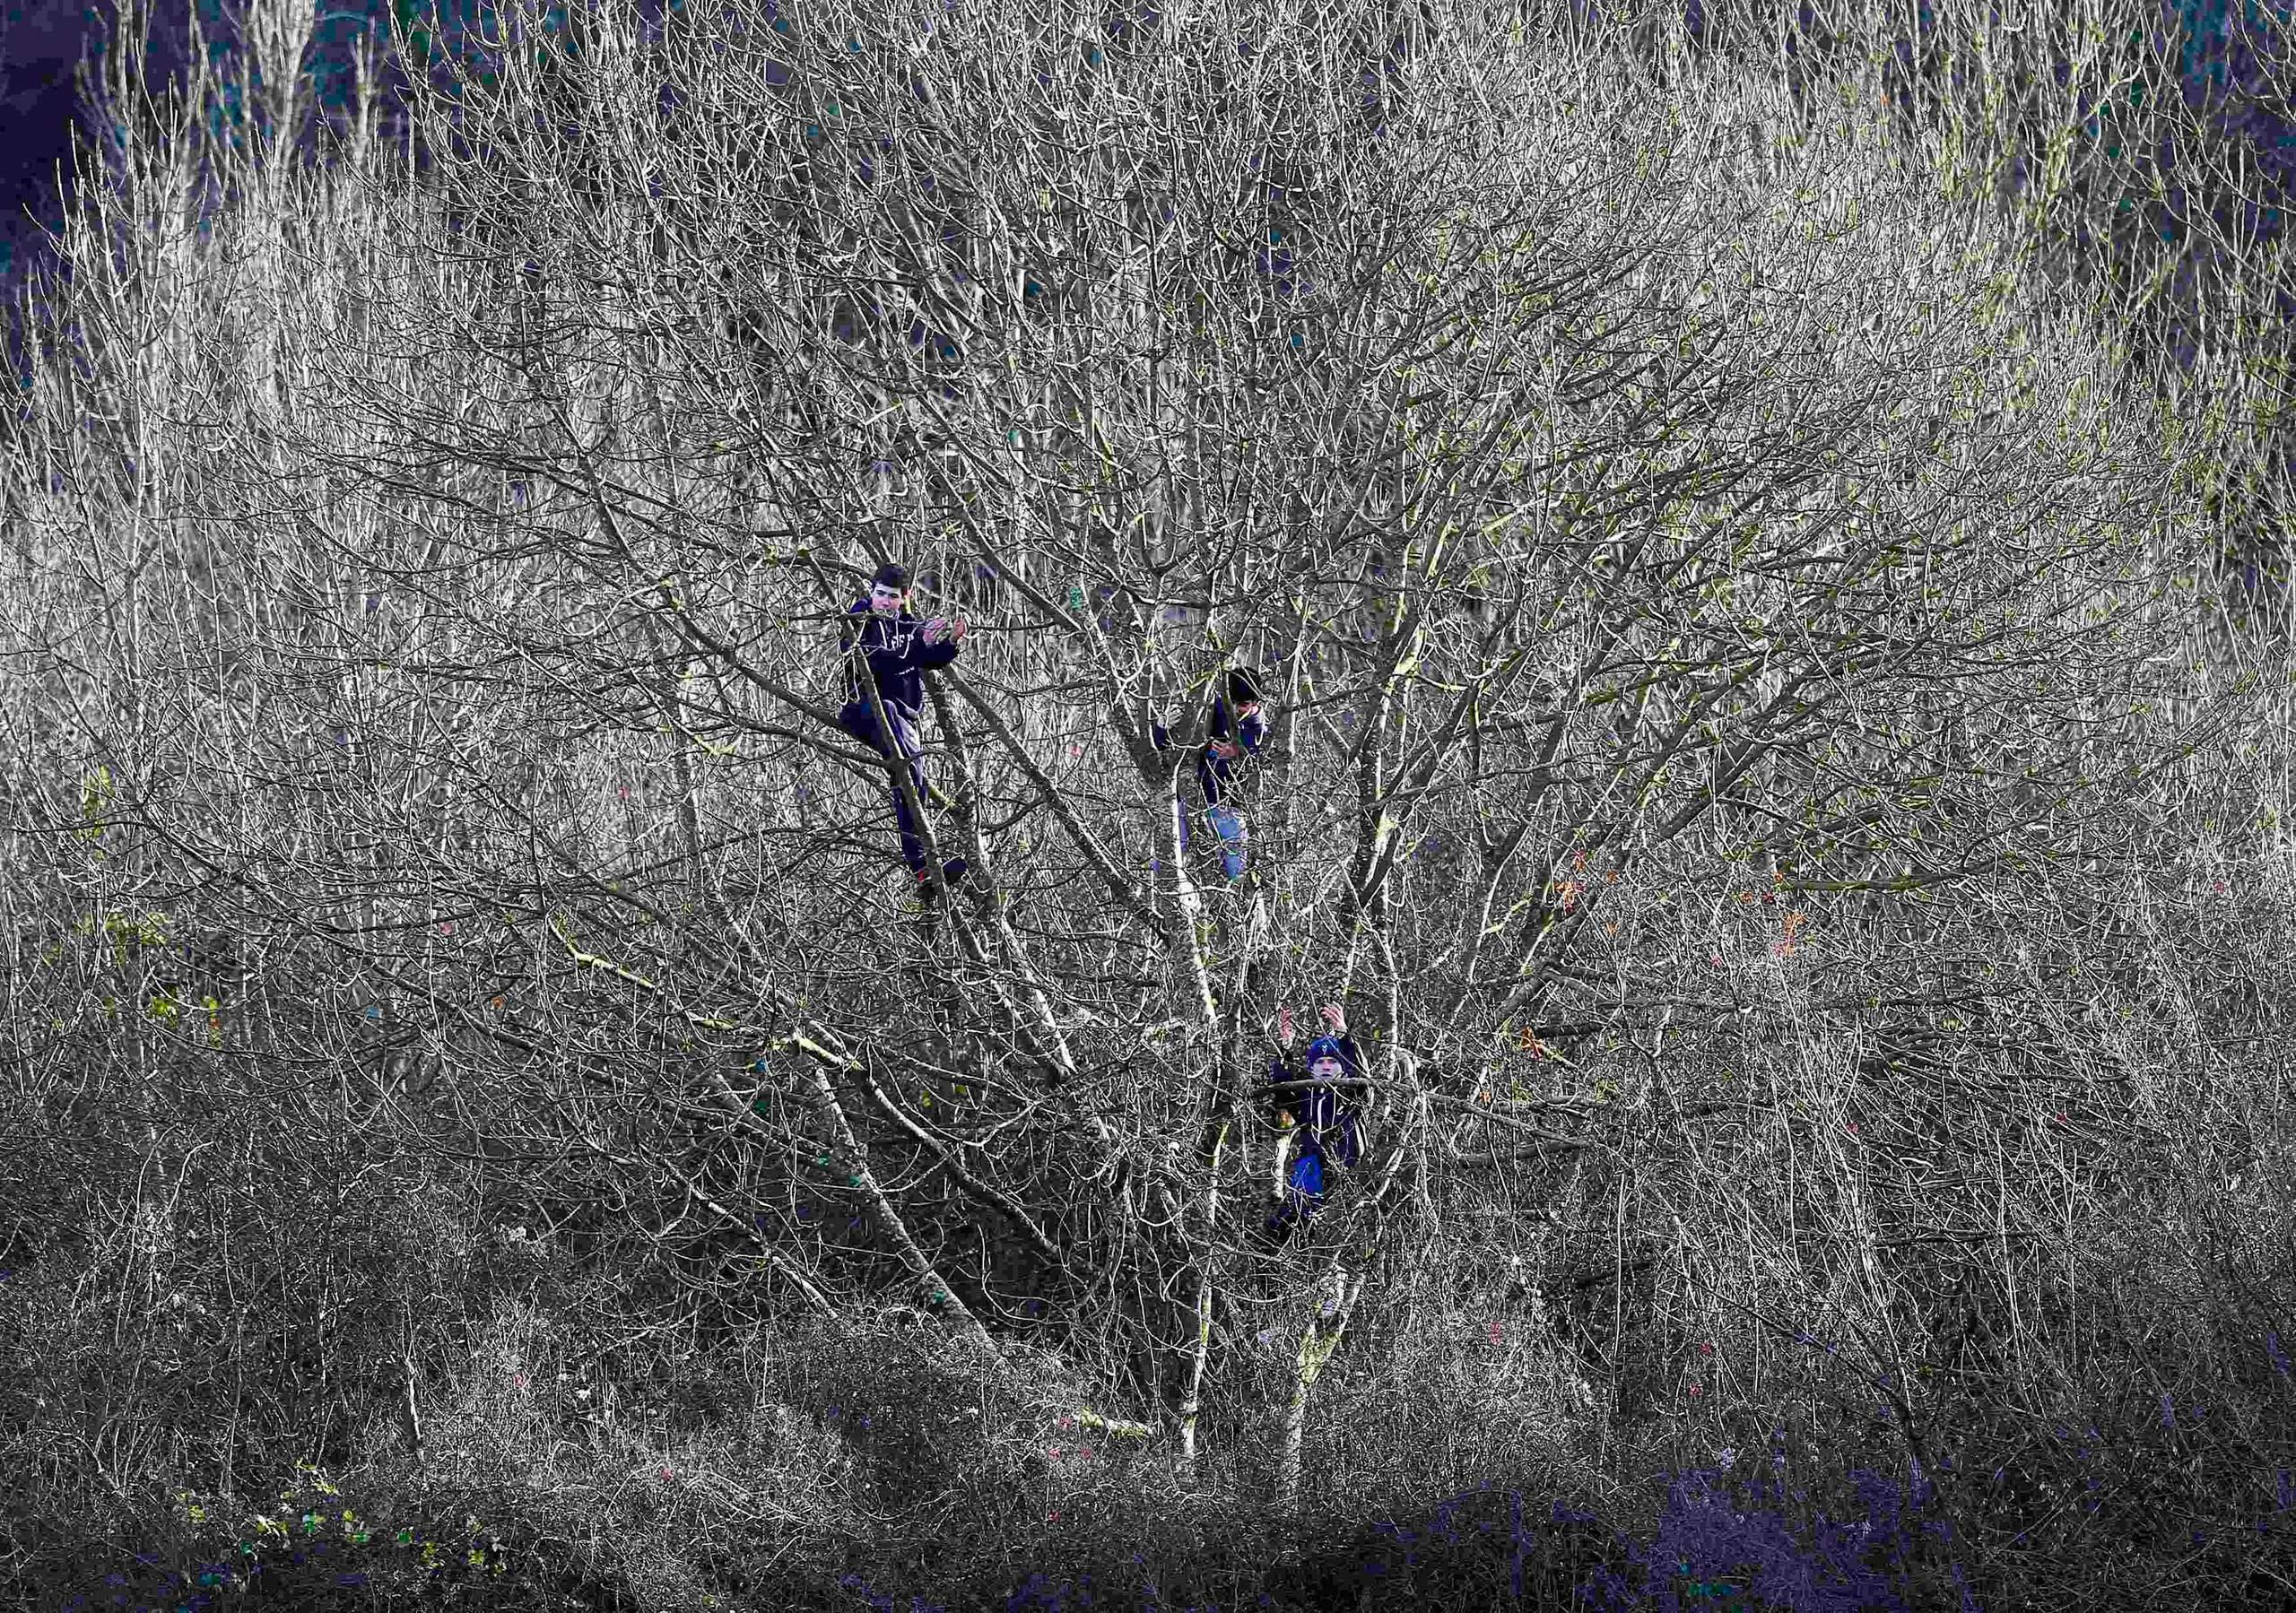 Jan. 4, 2015. Dover Athletic supporters applaud their team from trees outside the ground that overlook the pitch during their English FA Cup third round soccer match against Crystal Palace at Crabble Athletic Ground in Dover, England.